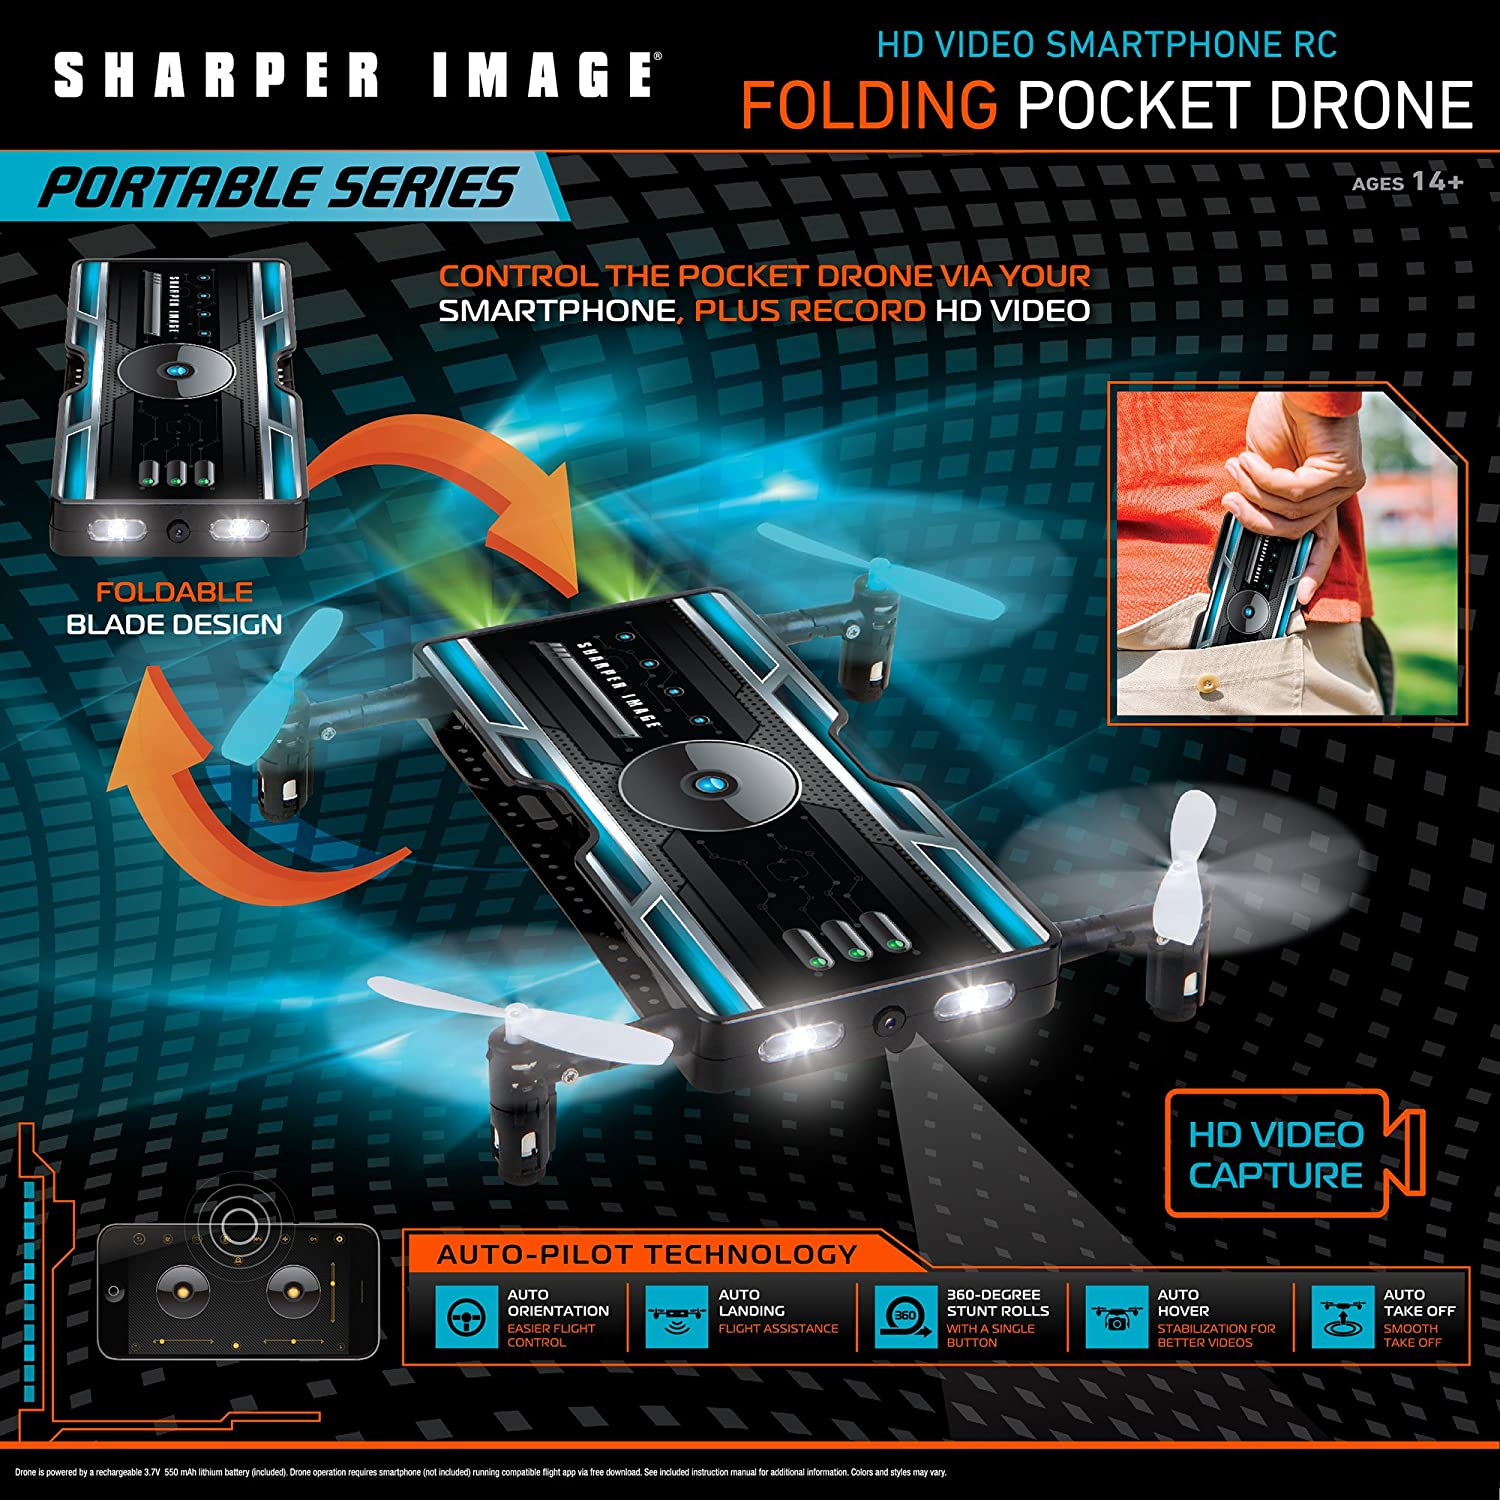 Amazoncom Sharper Image Hd Video Streaming Smartphone Rc Foldable